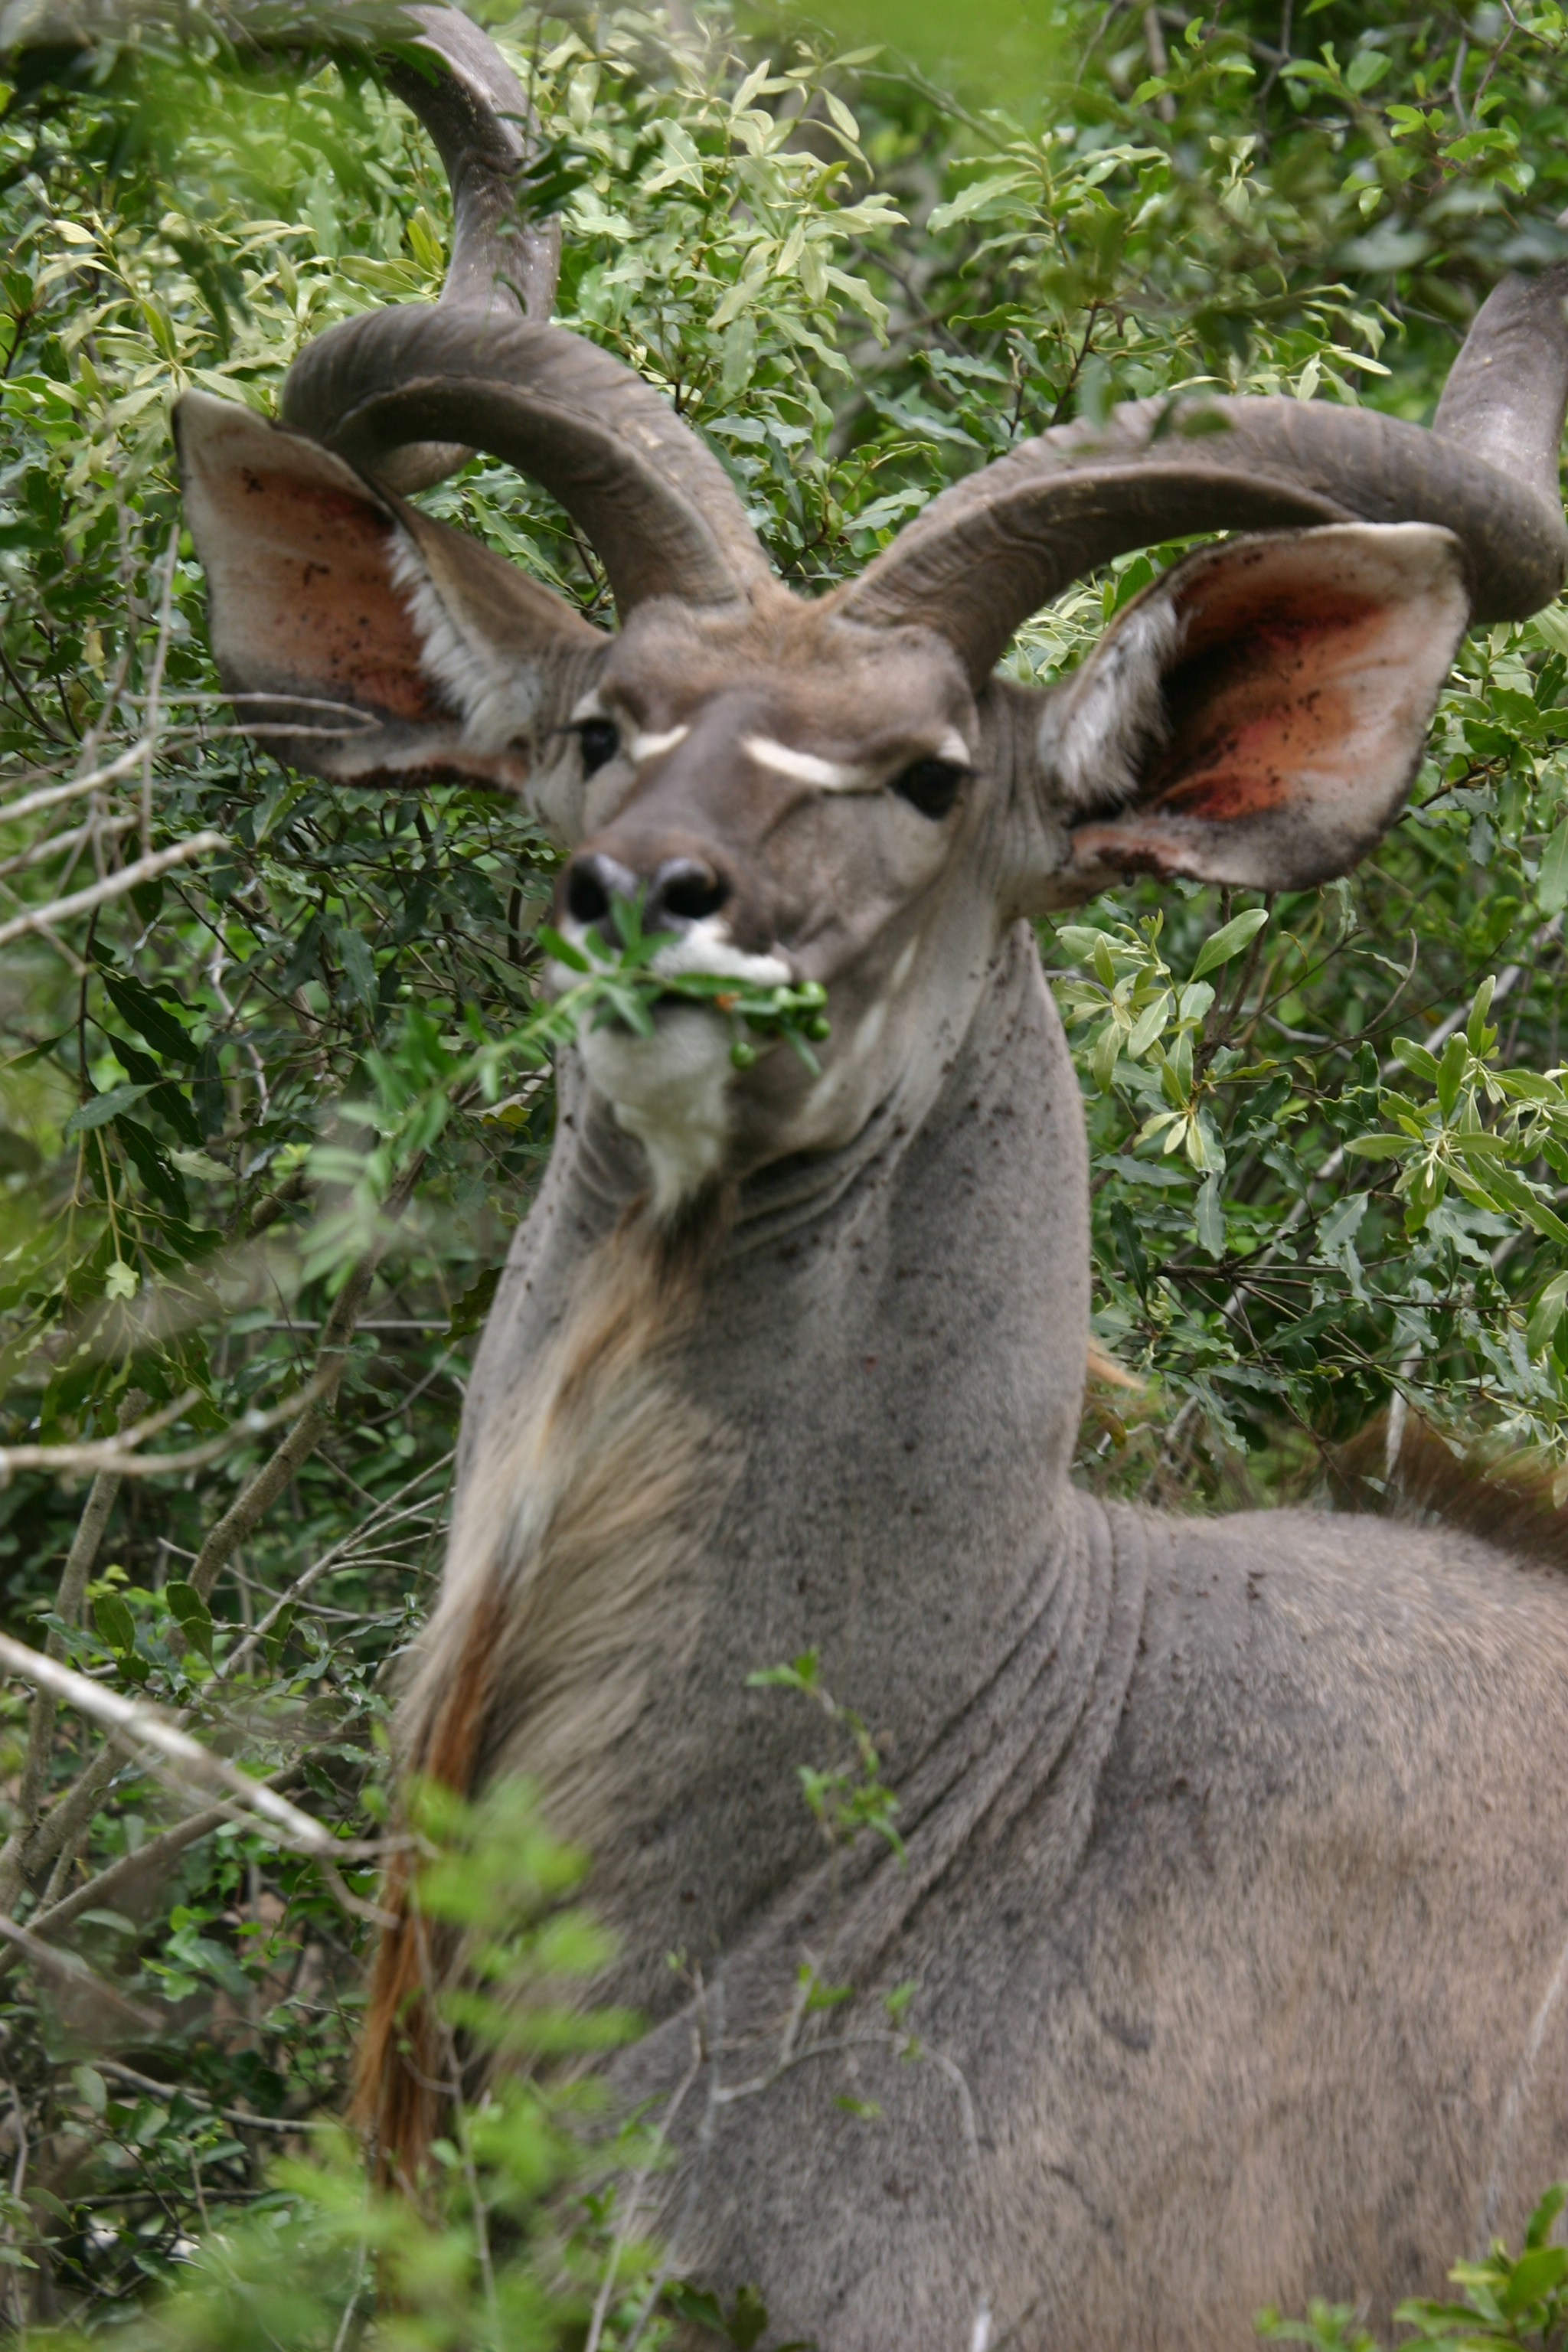 Male_Kudu_Eating.jpg